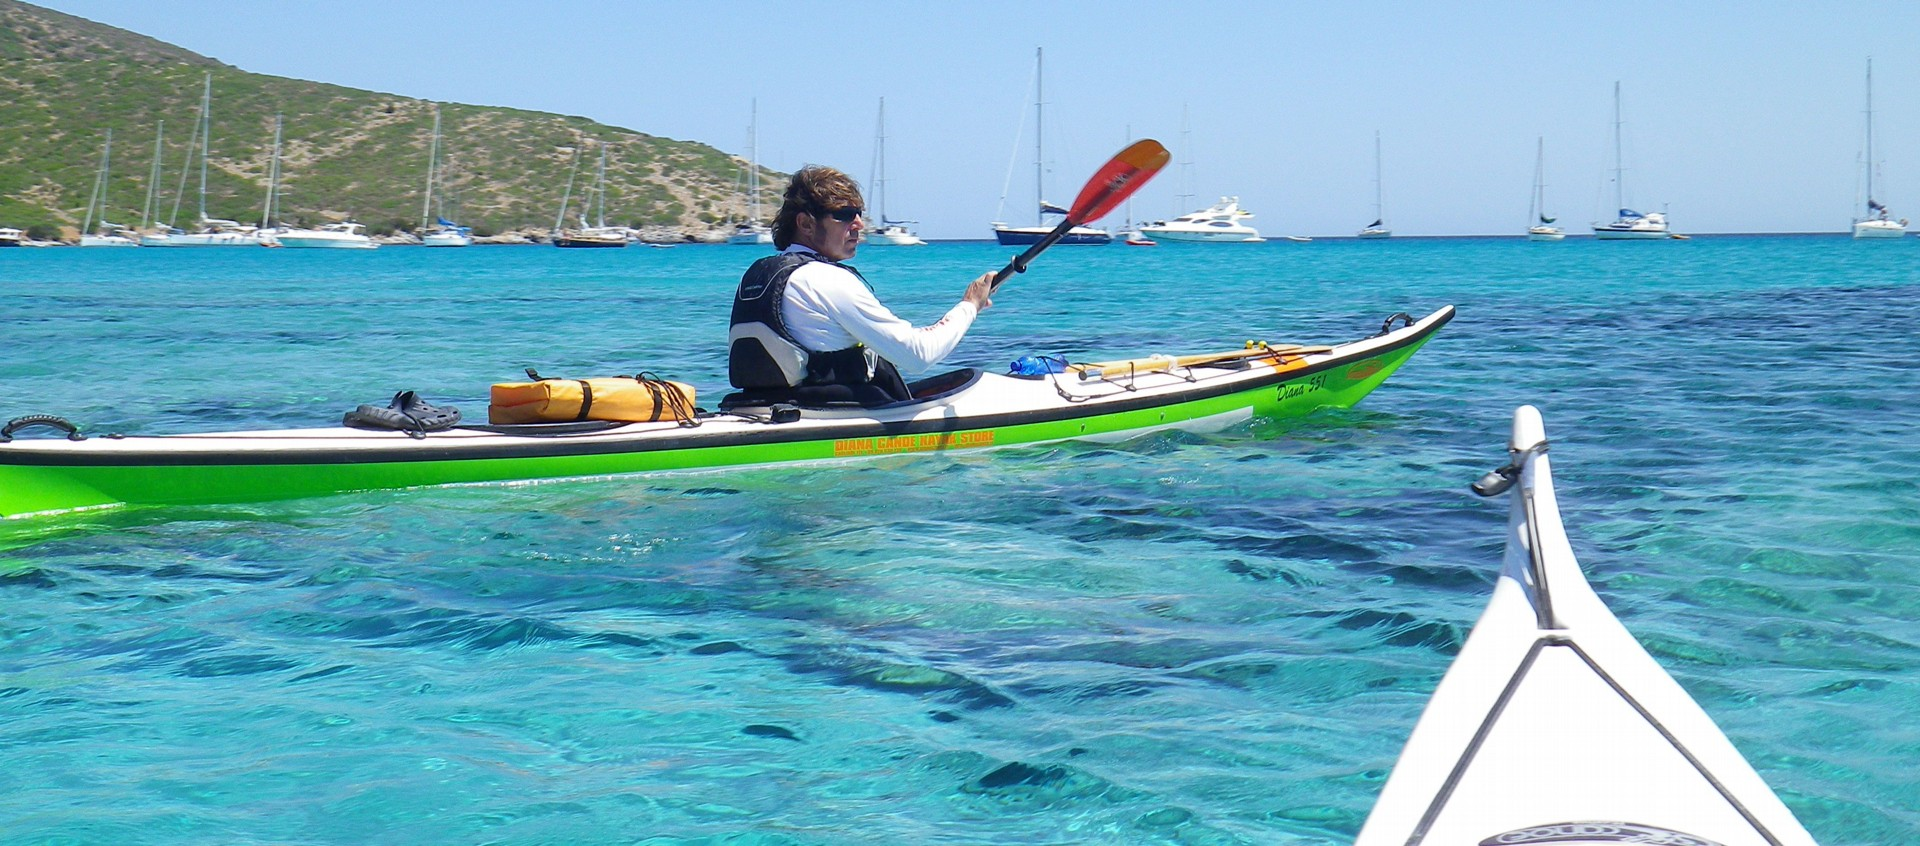 Zafferano.JPG - Sardinia - Daily Kayaking Trips - Kayaking